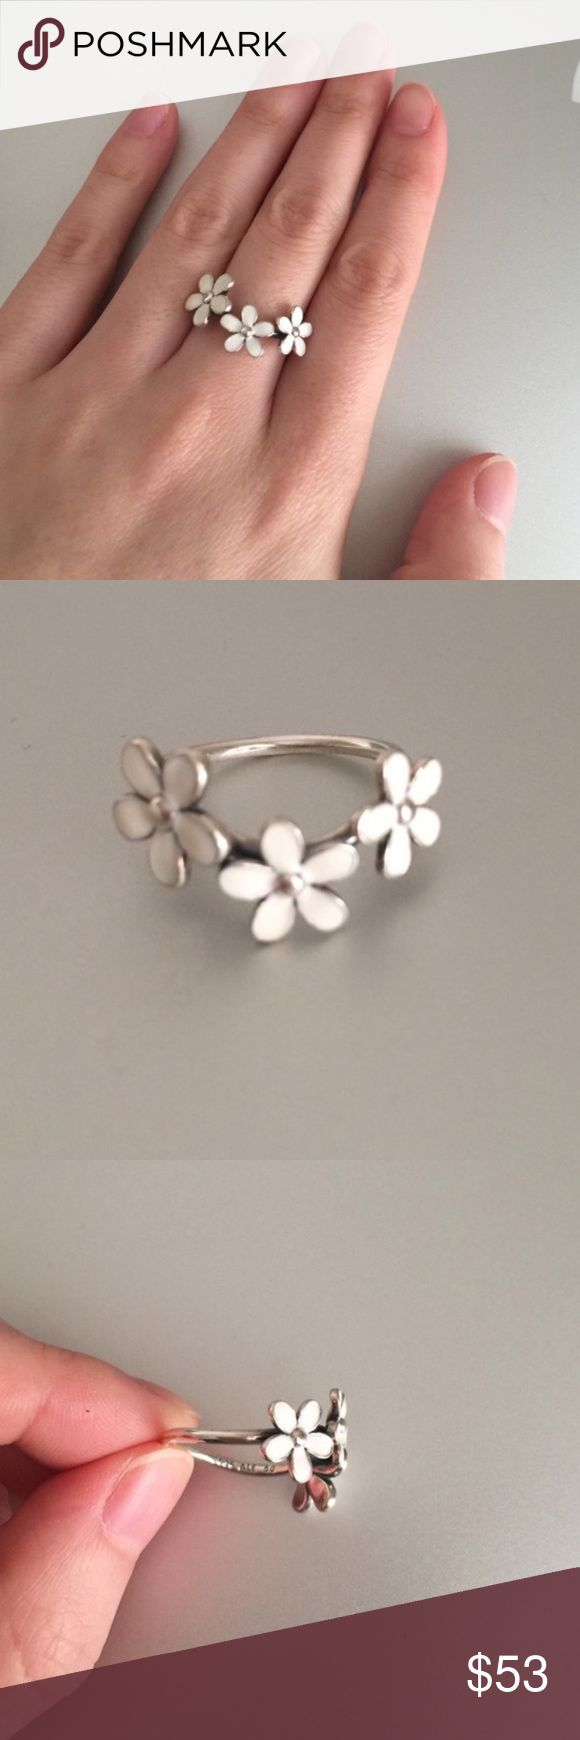 Authentic Pandora daisy ring 50 Worn once in like new condition, size 50 is equivalent to size 5, no original box,❌No TRADE‼️ Pandora Jewelry Rings